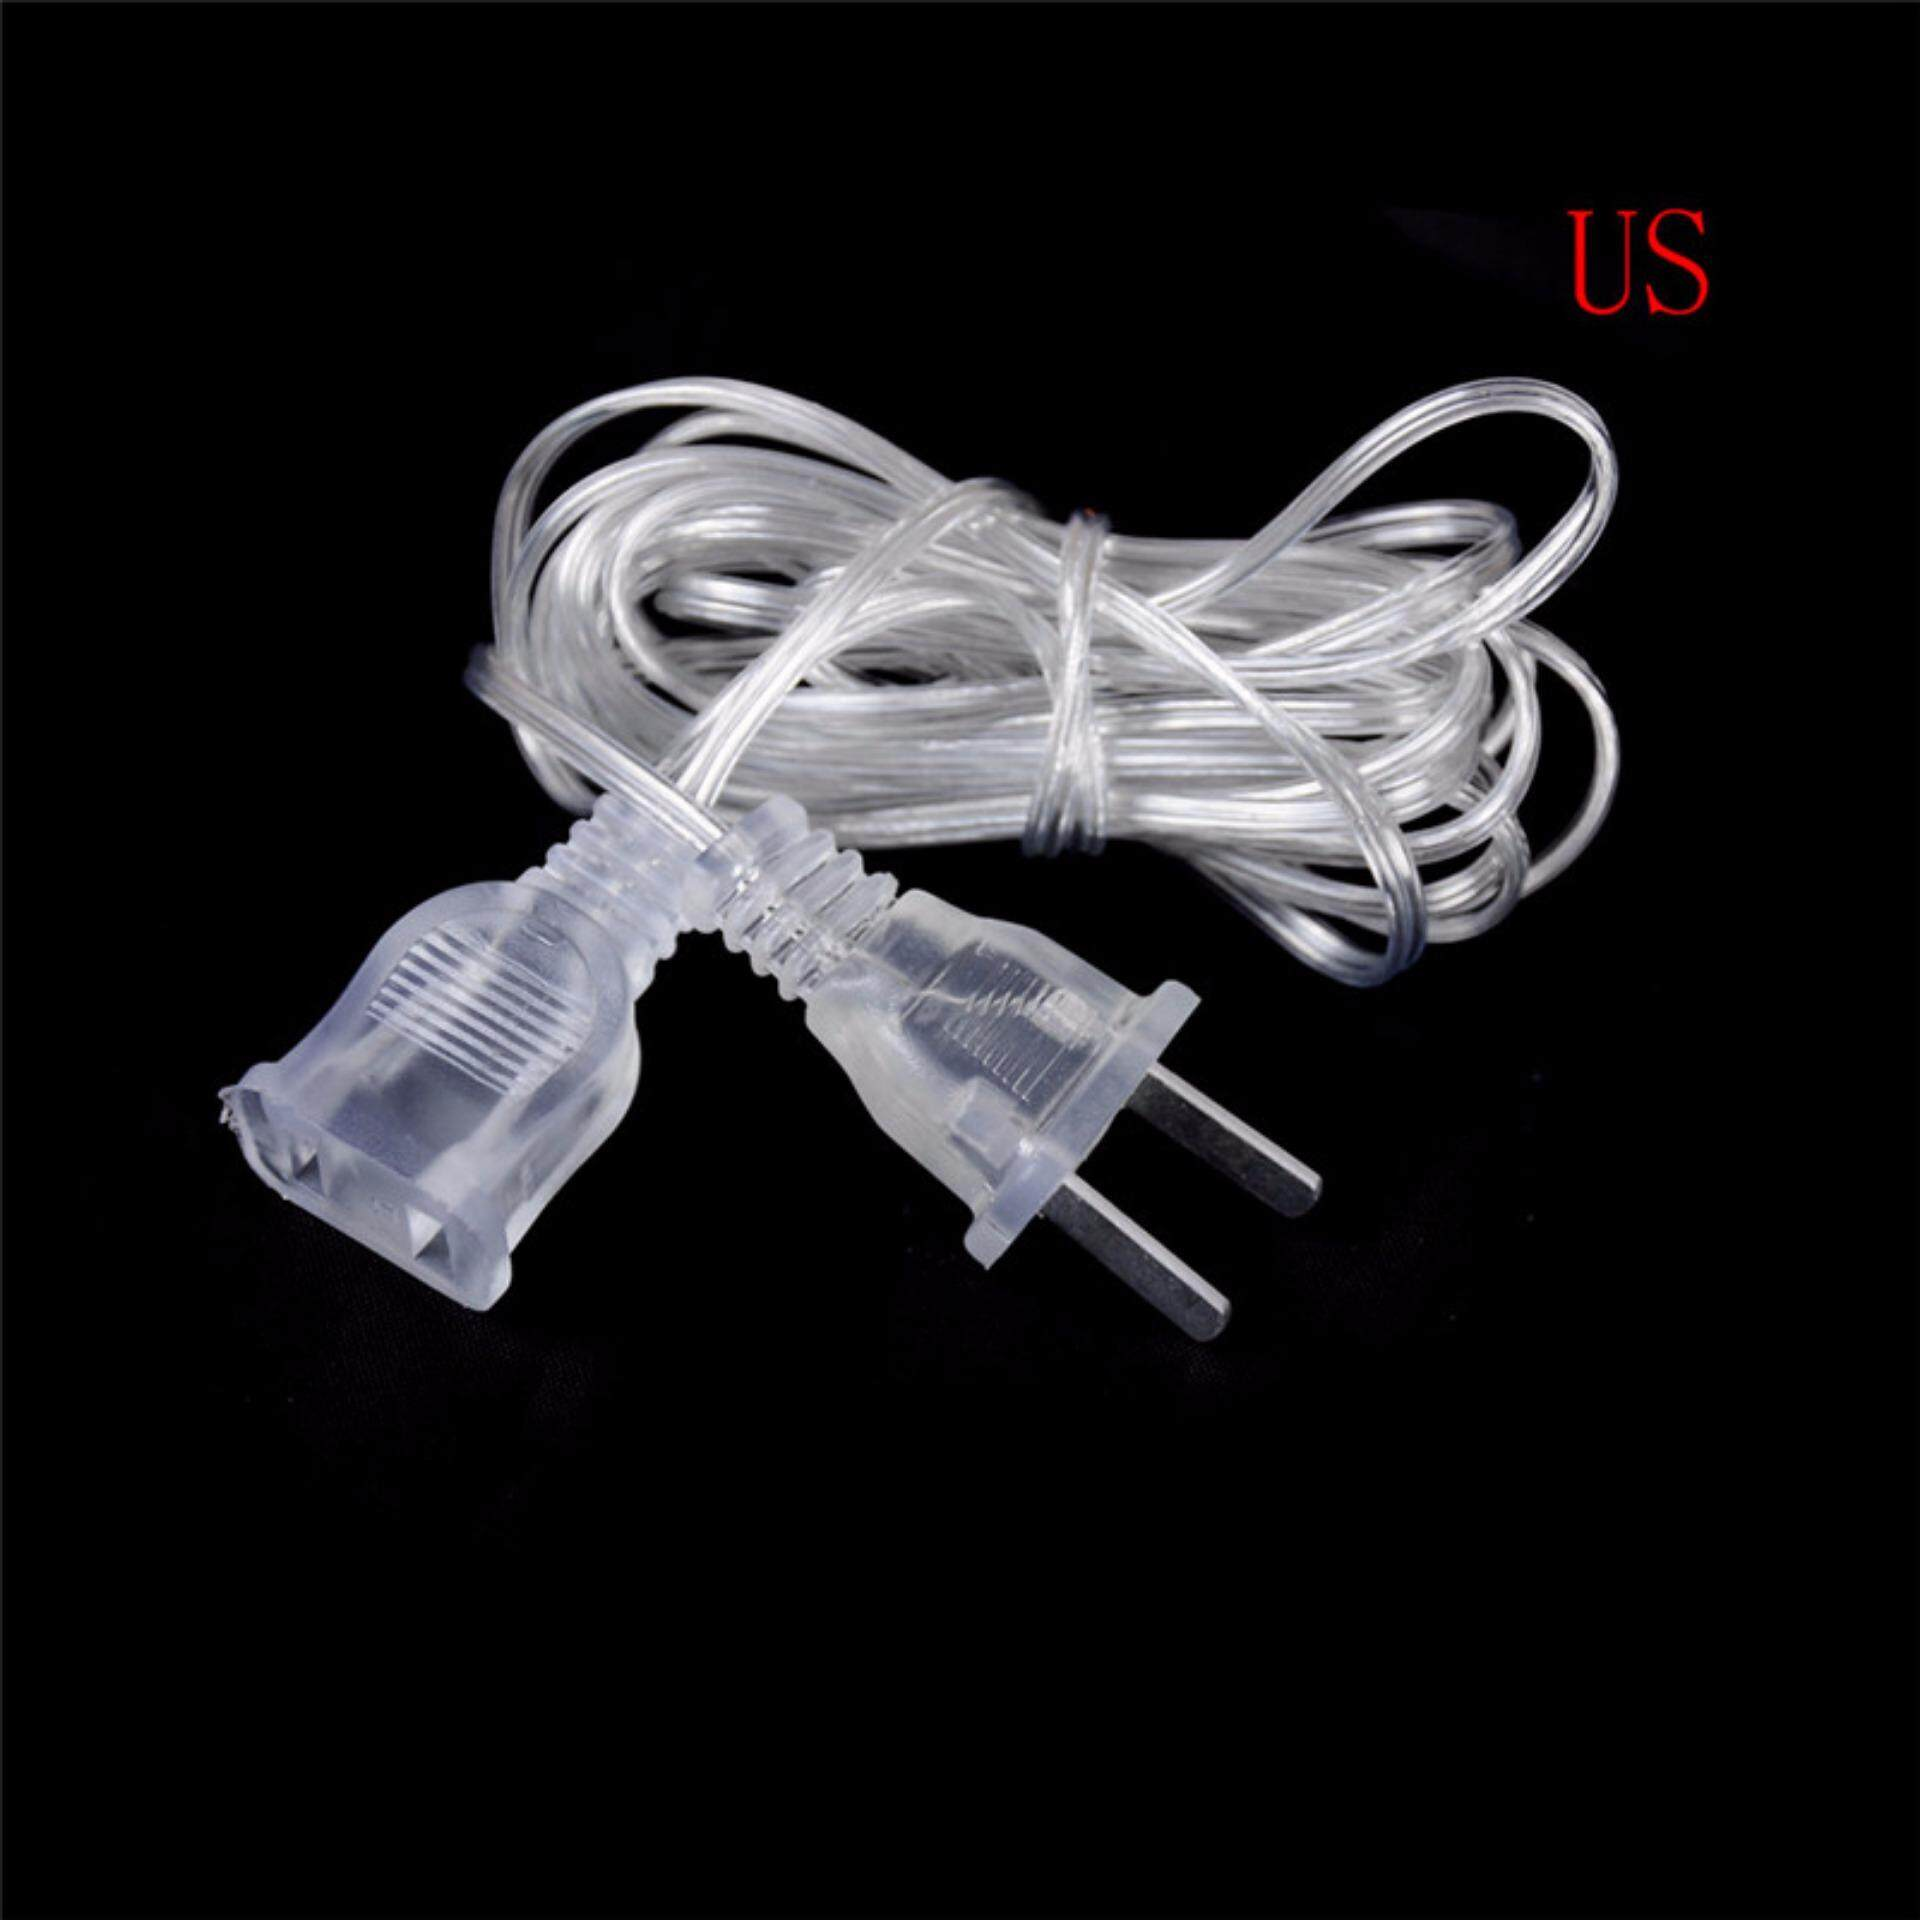 Mecola Plastic Male To Female Power Supply AC Adapter LED Extension Cord Cable